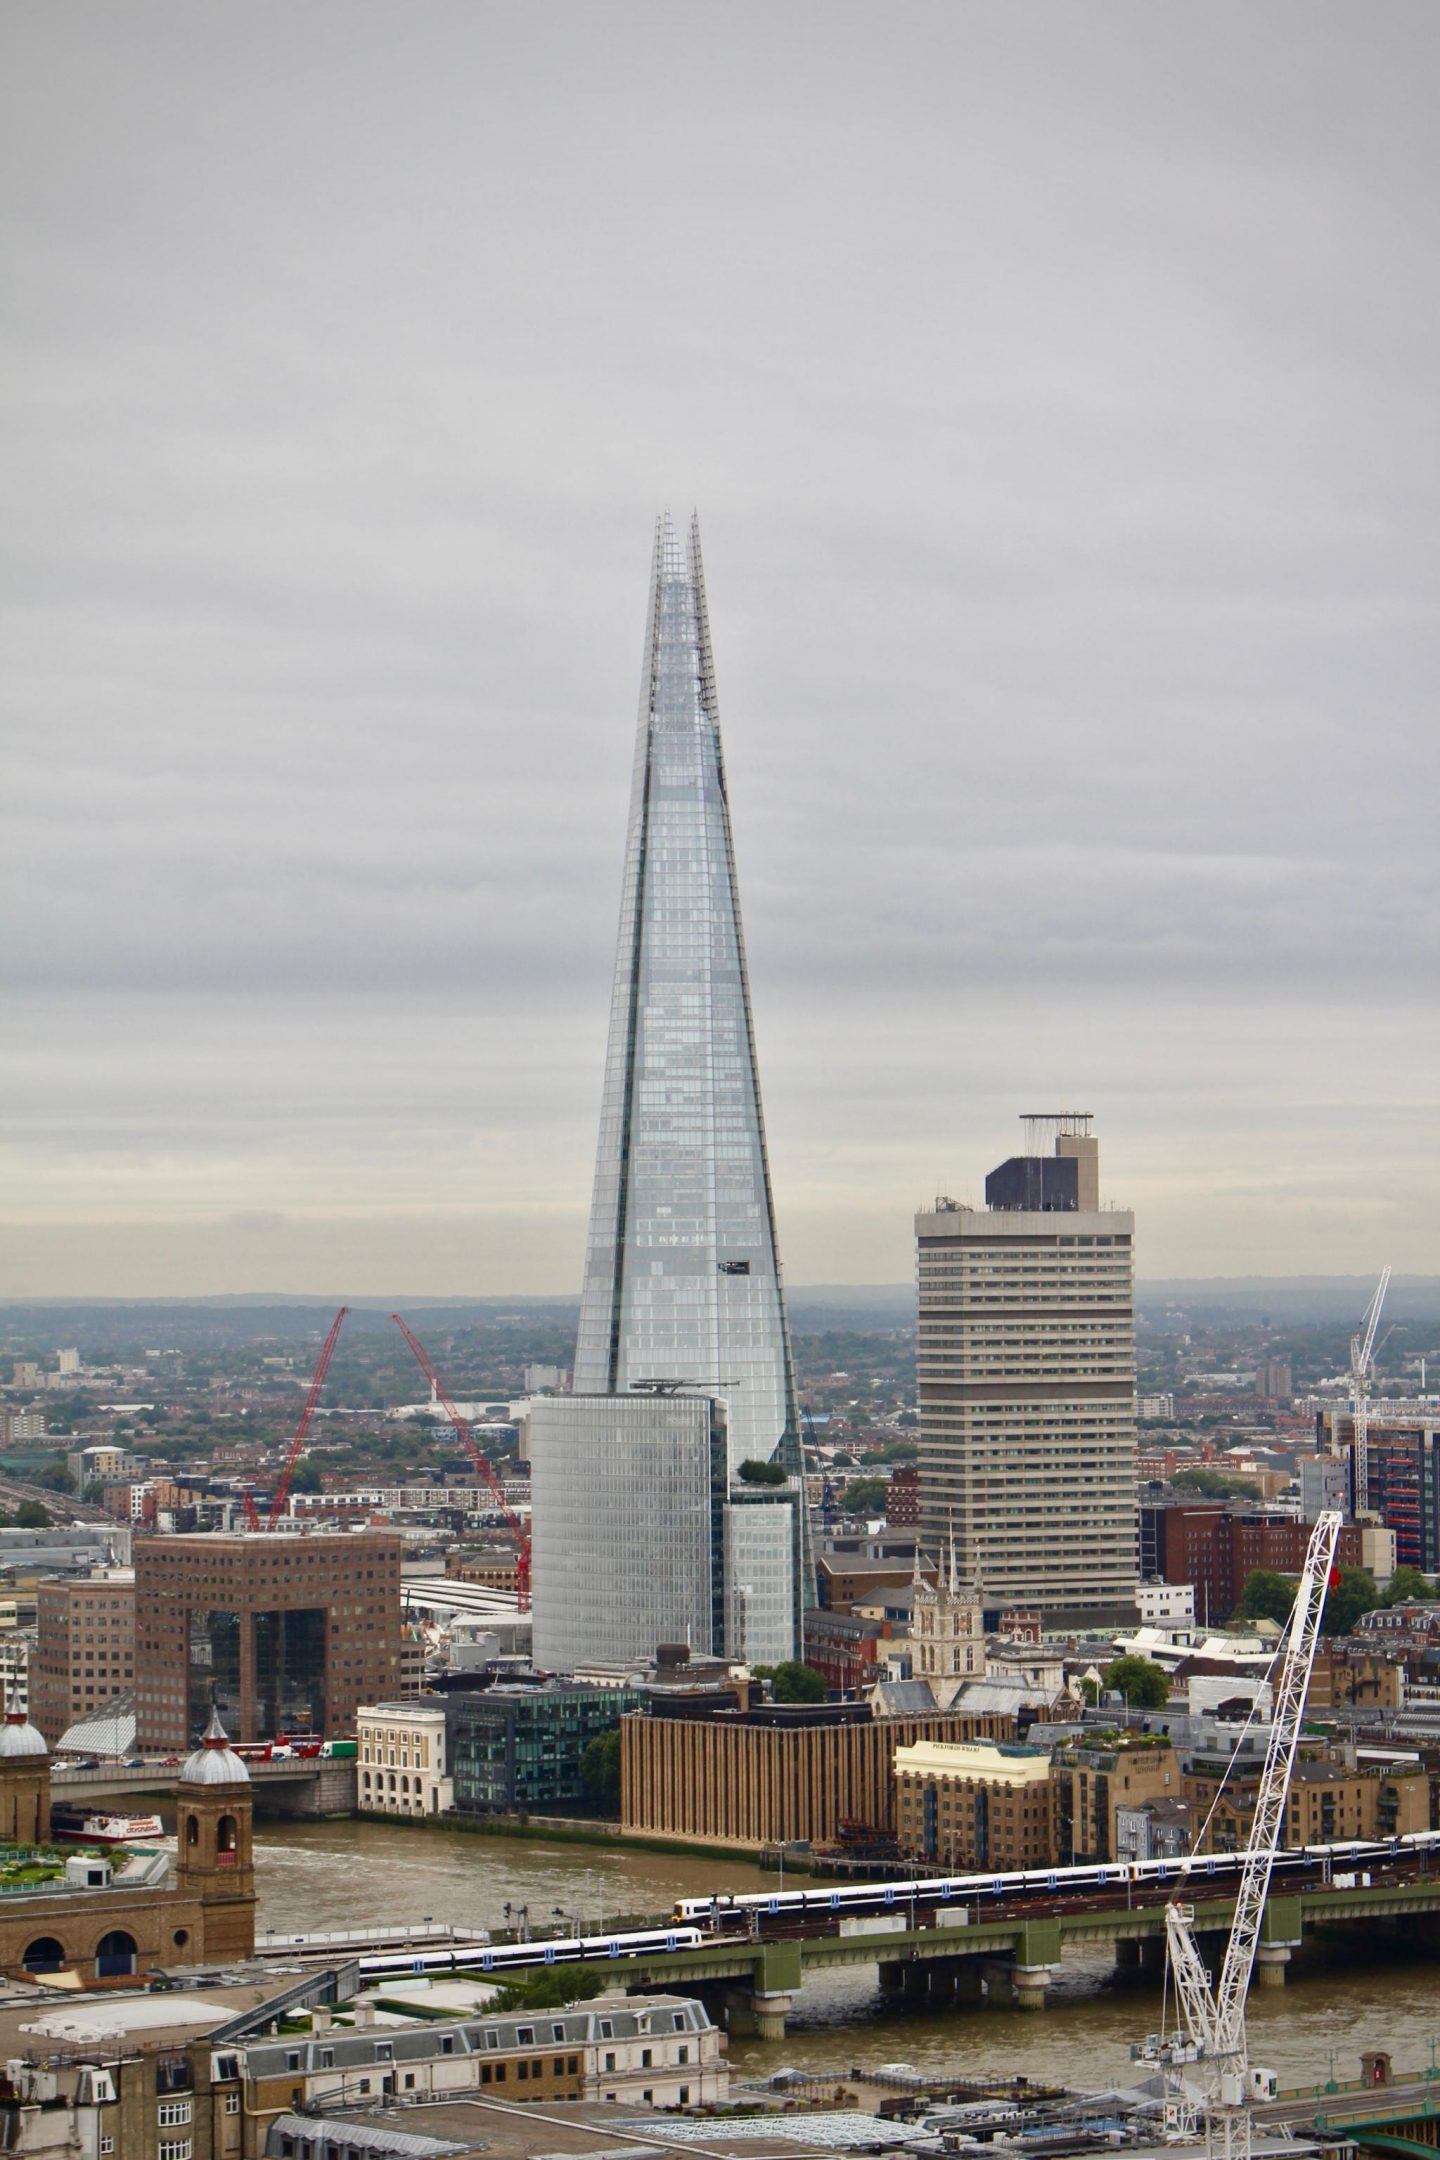 The Shard ... London St. Pauls Cathedral ... The Spectacular Adventurer